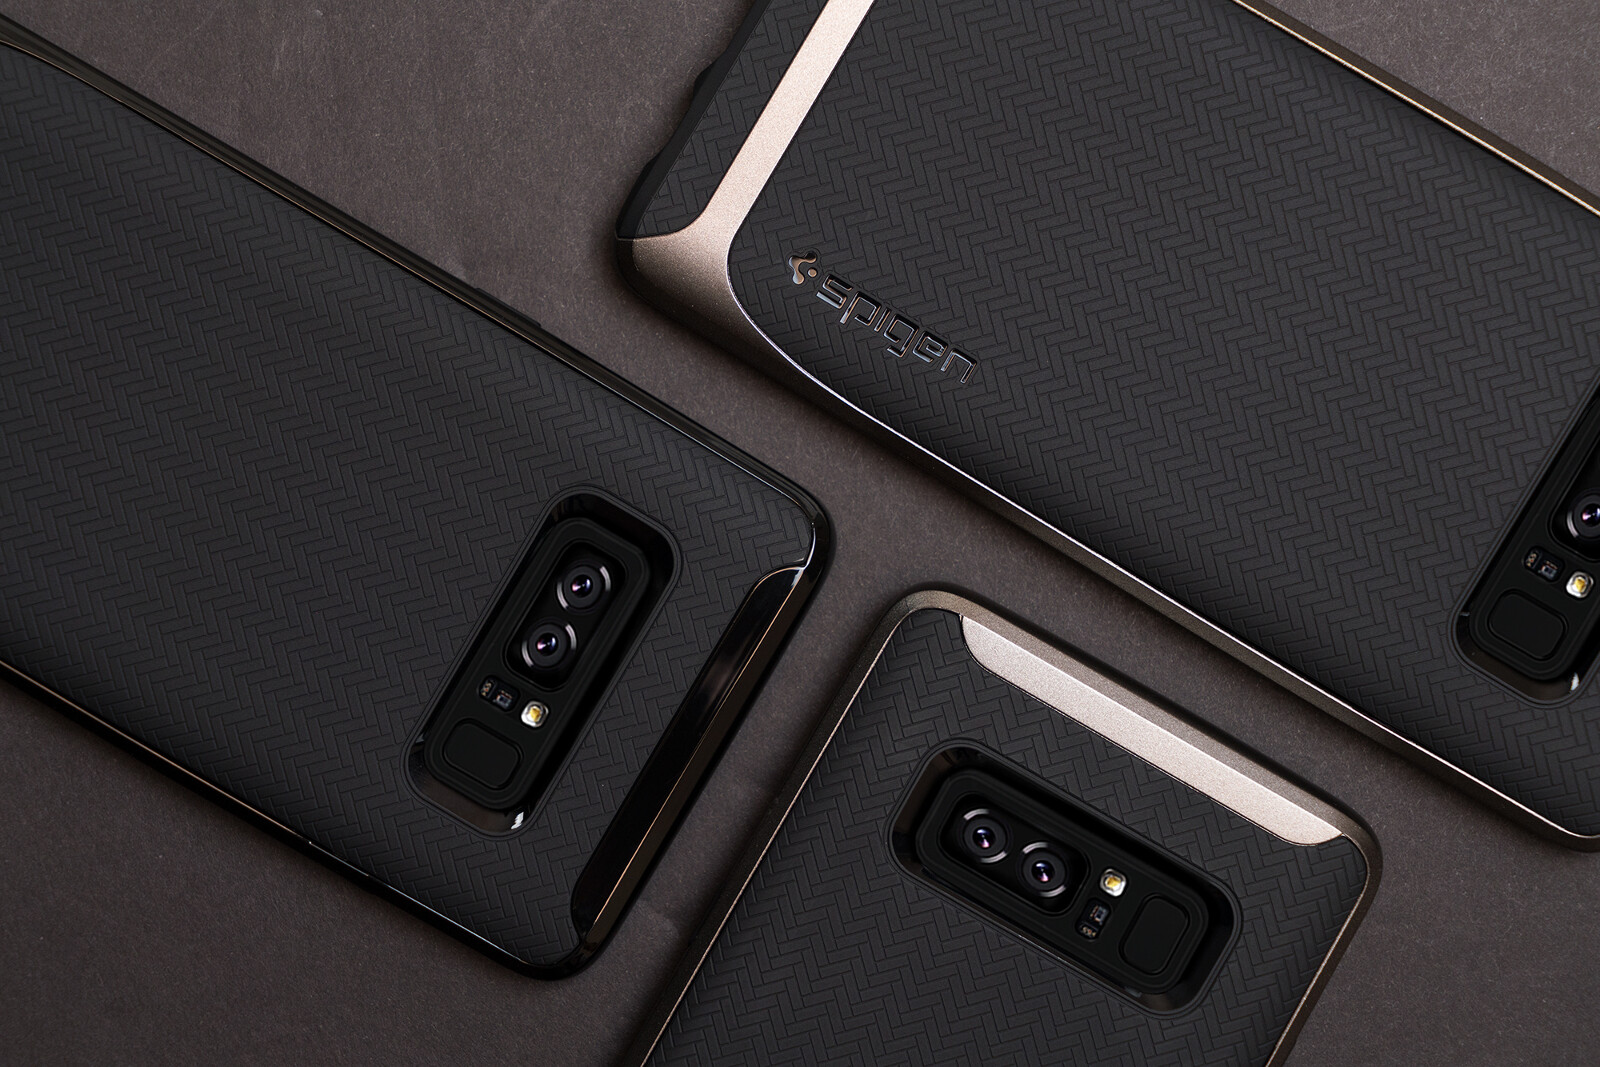 pretty nice 91891 51d0a Spigen's cases are ready to protect your Galaxy Note 8 from day 1 ...